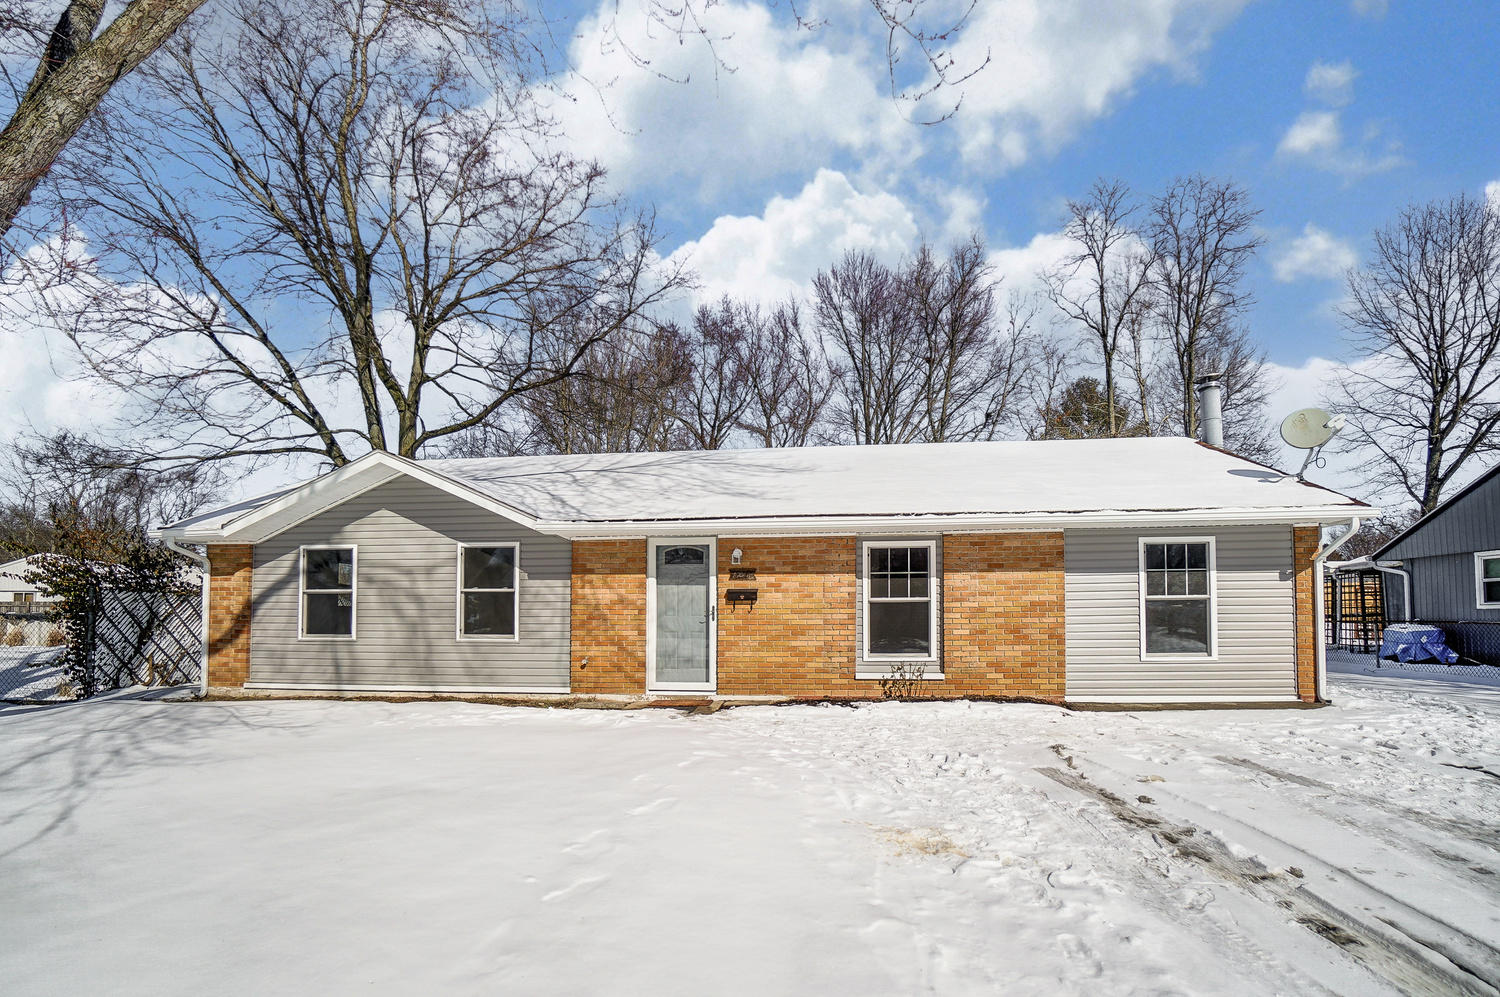 1211 Hemlock Way Property Photo - New Carlisle, OH real estate listing